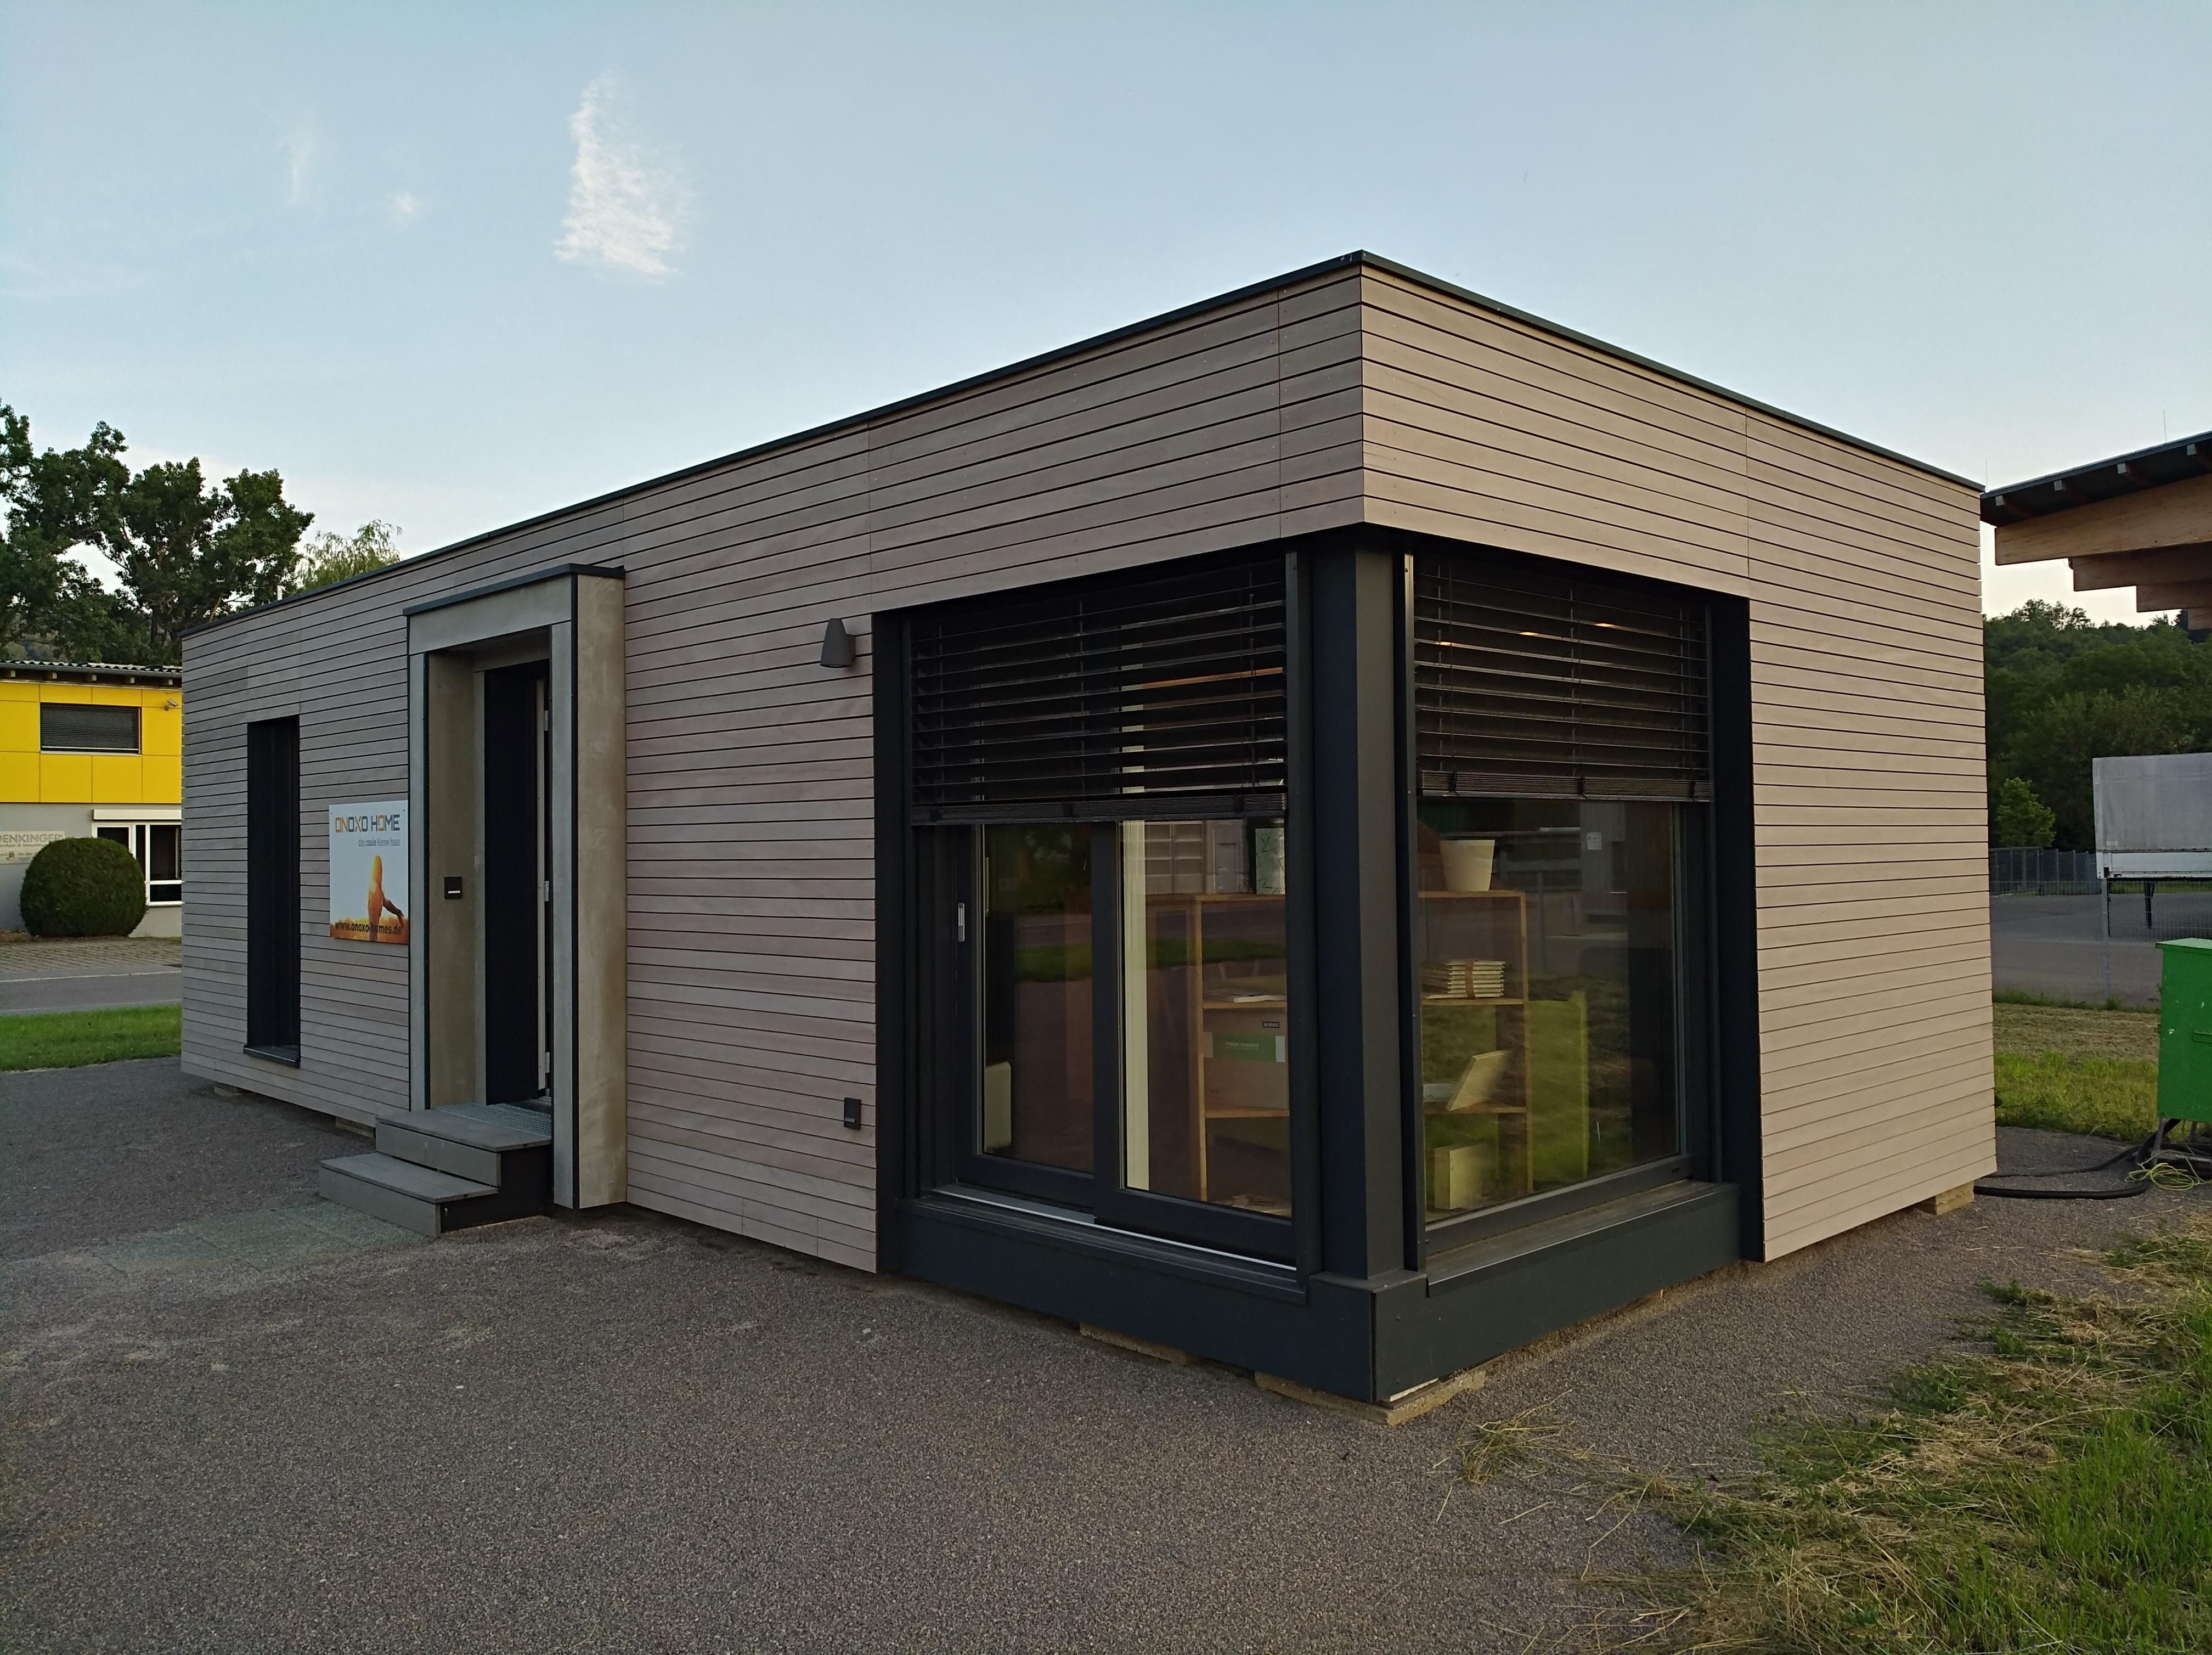 Modulhaus Haas Modulhaus 46m² Als Lässiges Singlehome Tiny House Mania In 2019